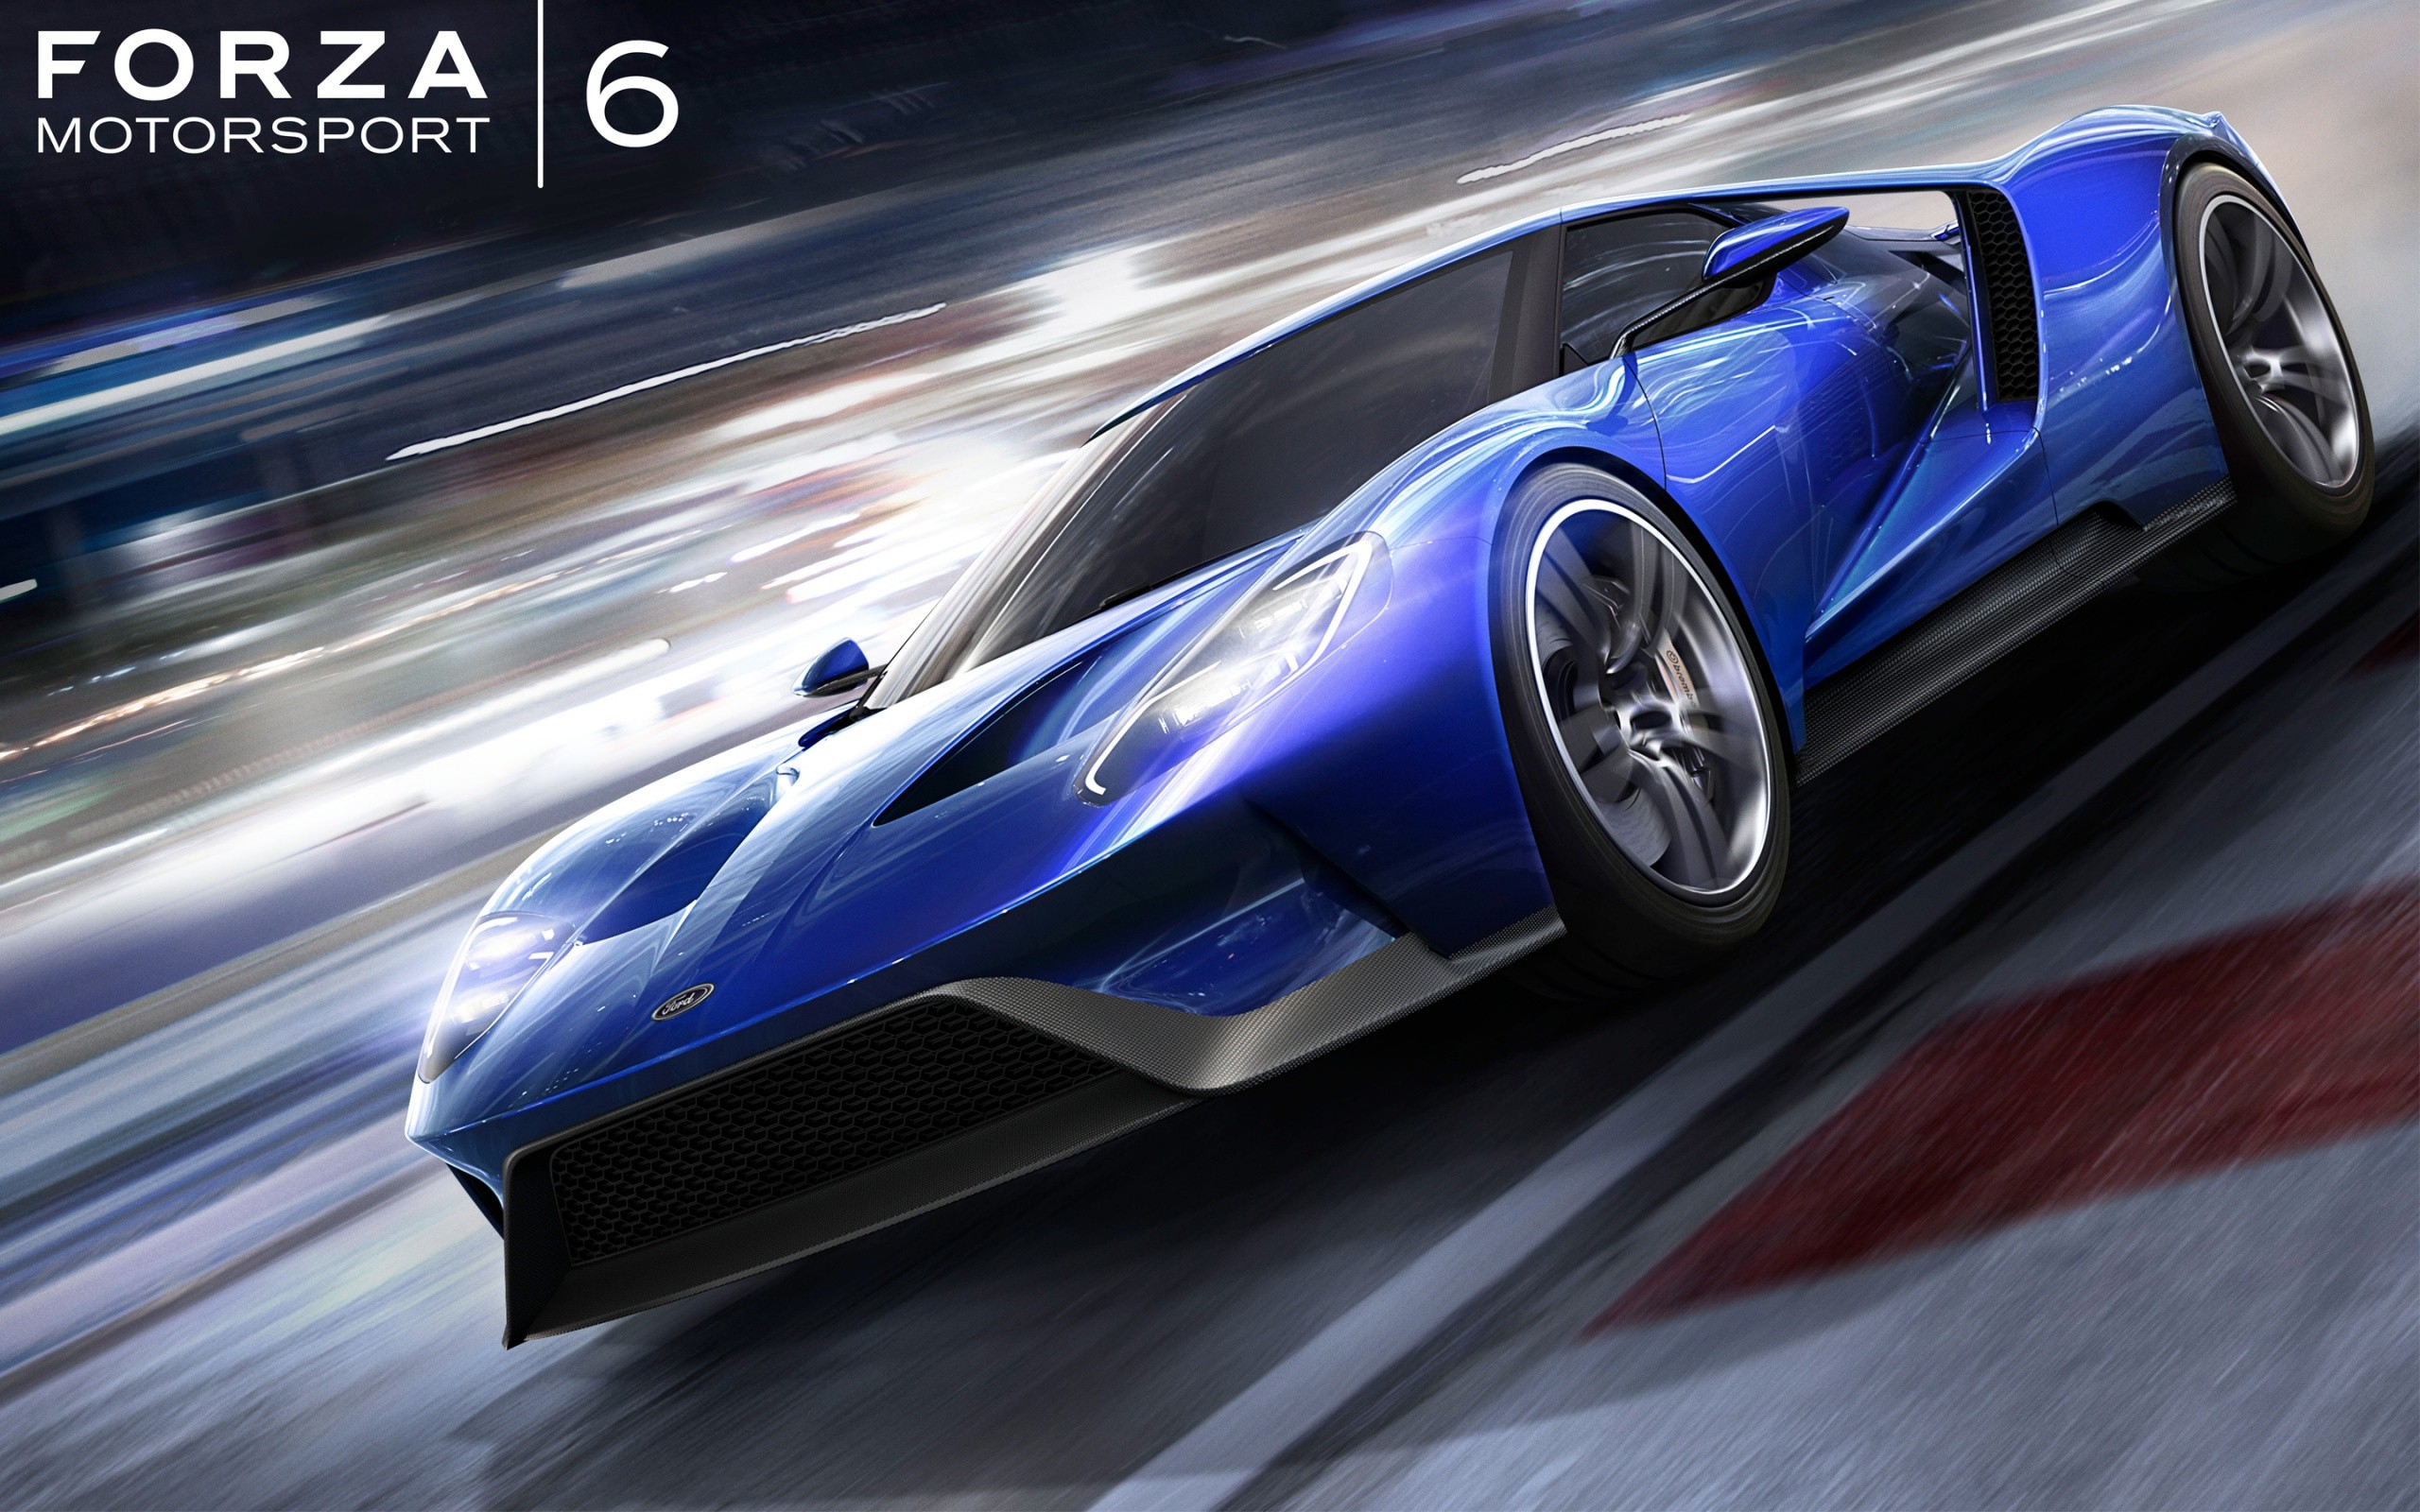 Ford Gt Forza Motorsport 6 Wide